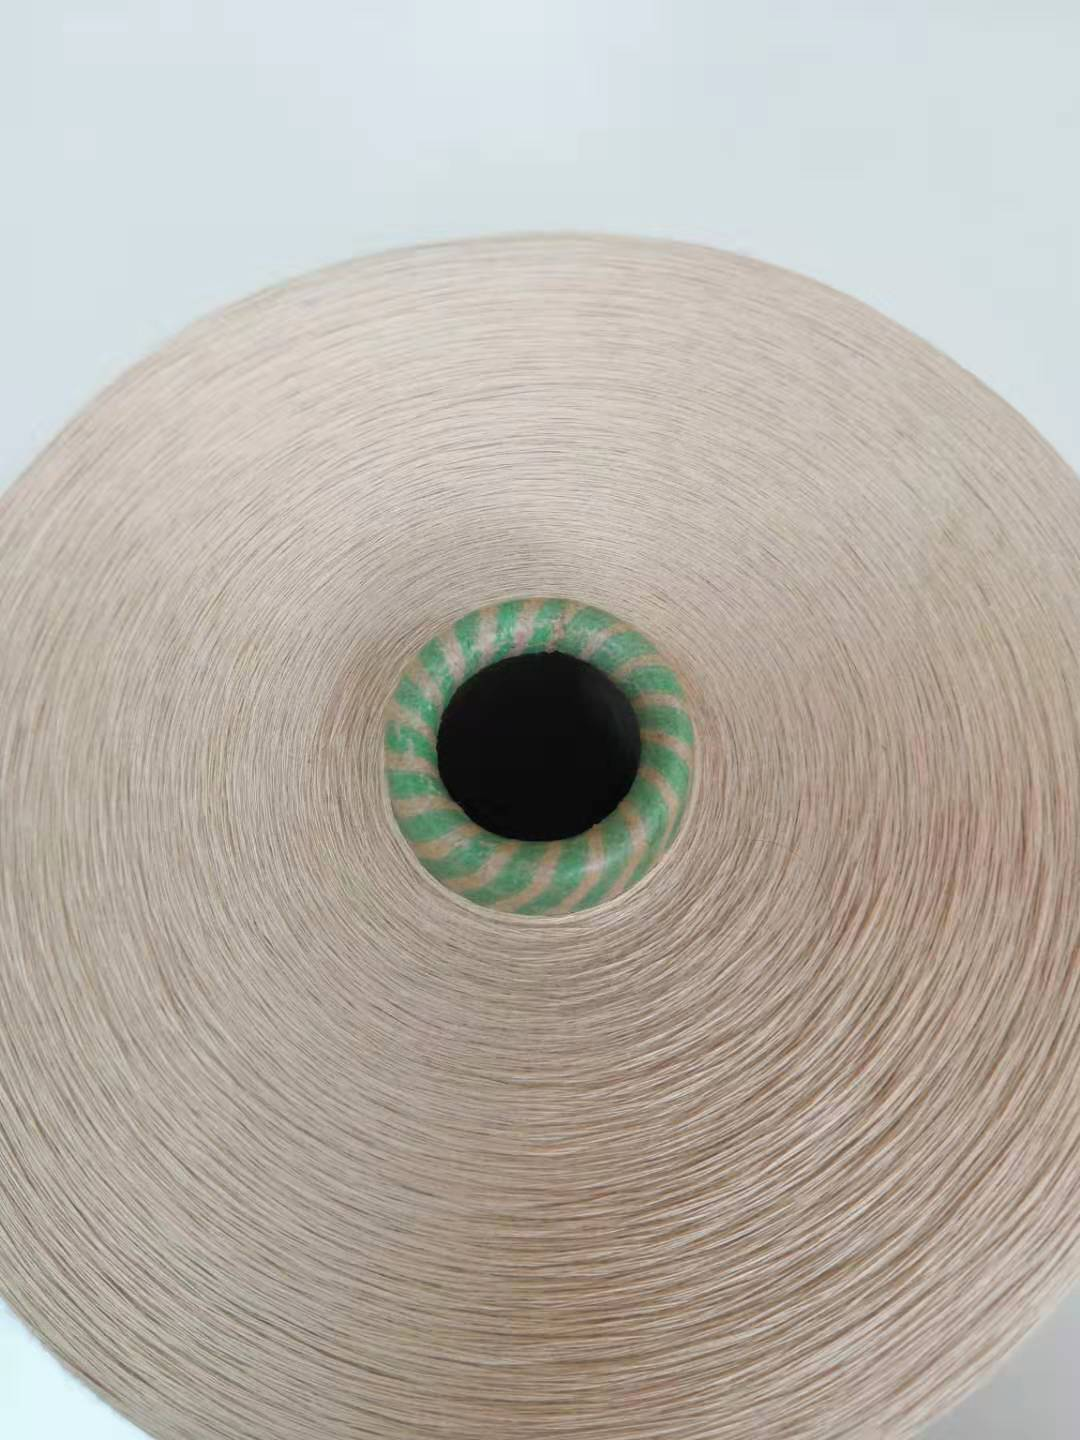 Aloe vera fiber yarn for knitting and weaving cloth and fabric